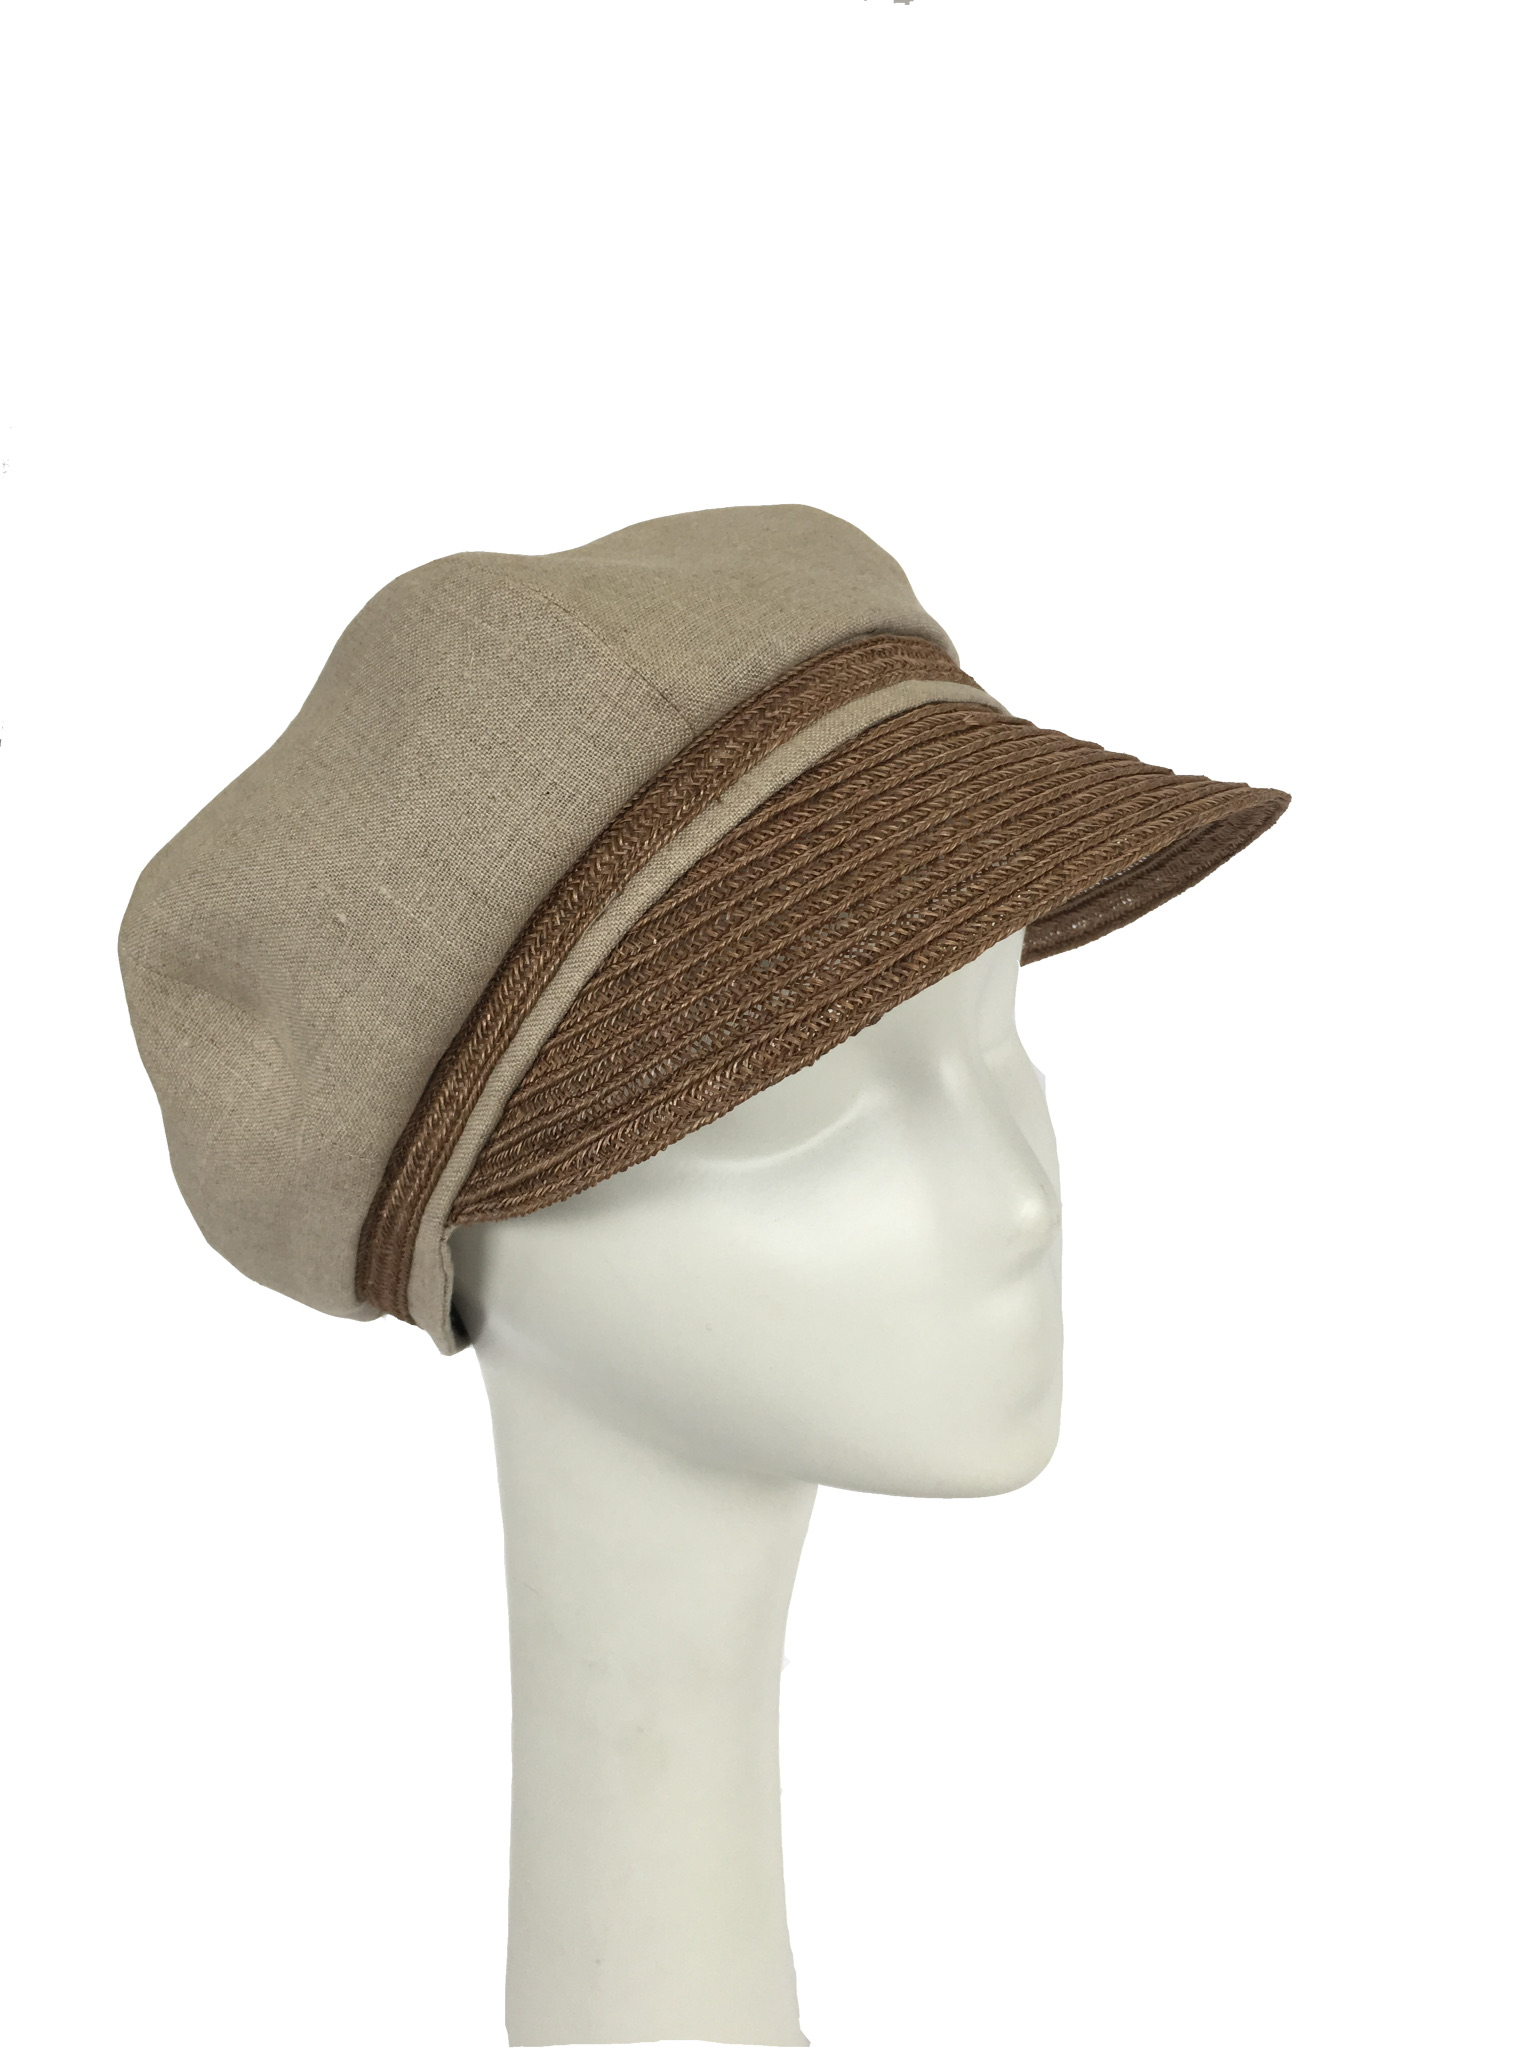 Natural Linen and Hemp Newsboy cap